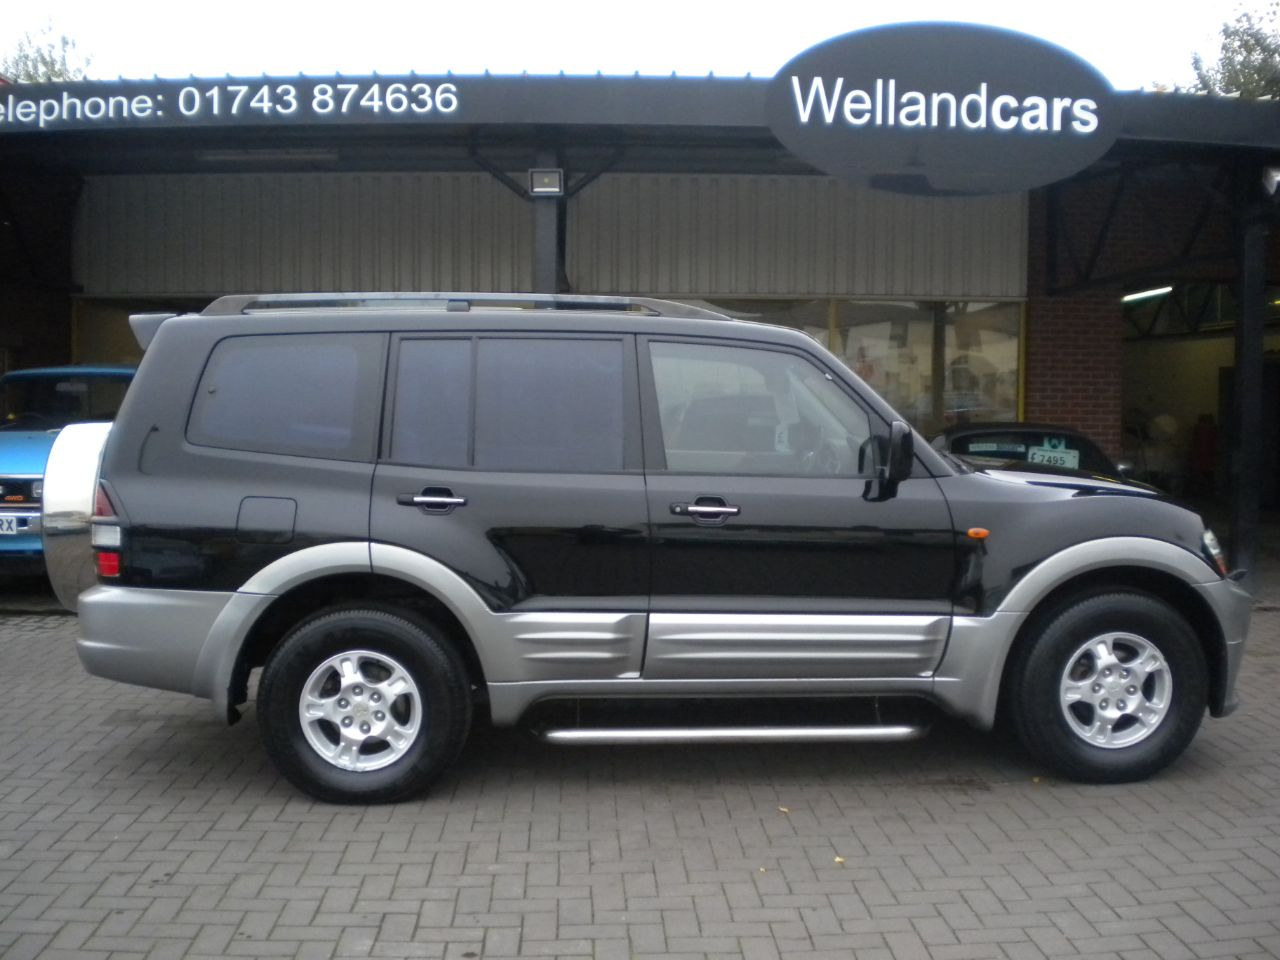 Mitsubishi Shogun 3.2 DI-D Equippe 5dr Auto, 7 Seats, Full Leather, Bodykit, Navigation, Sunroof 4 X 4 Diesel Black / Silver at Welland Cars Shrewsbury